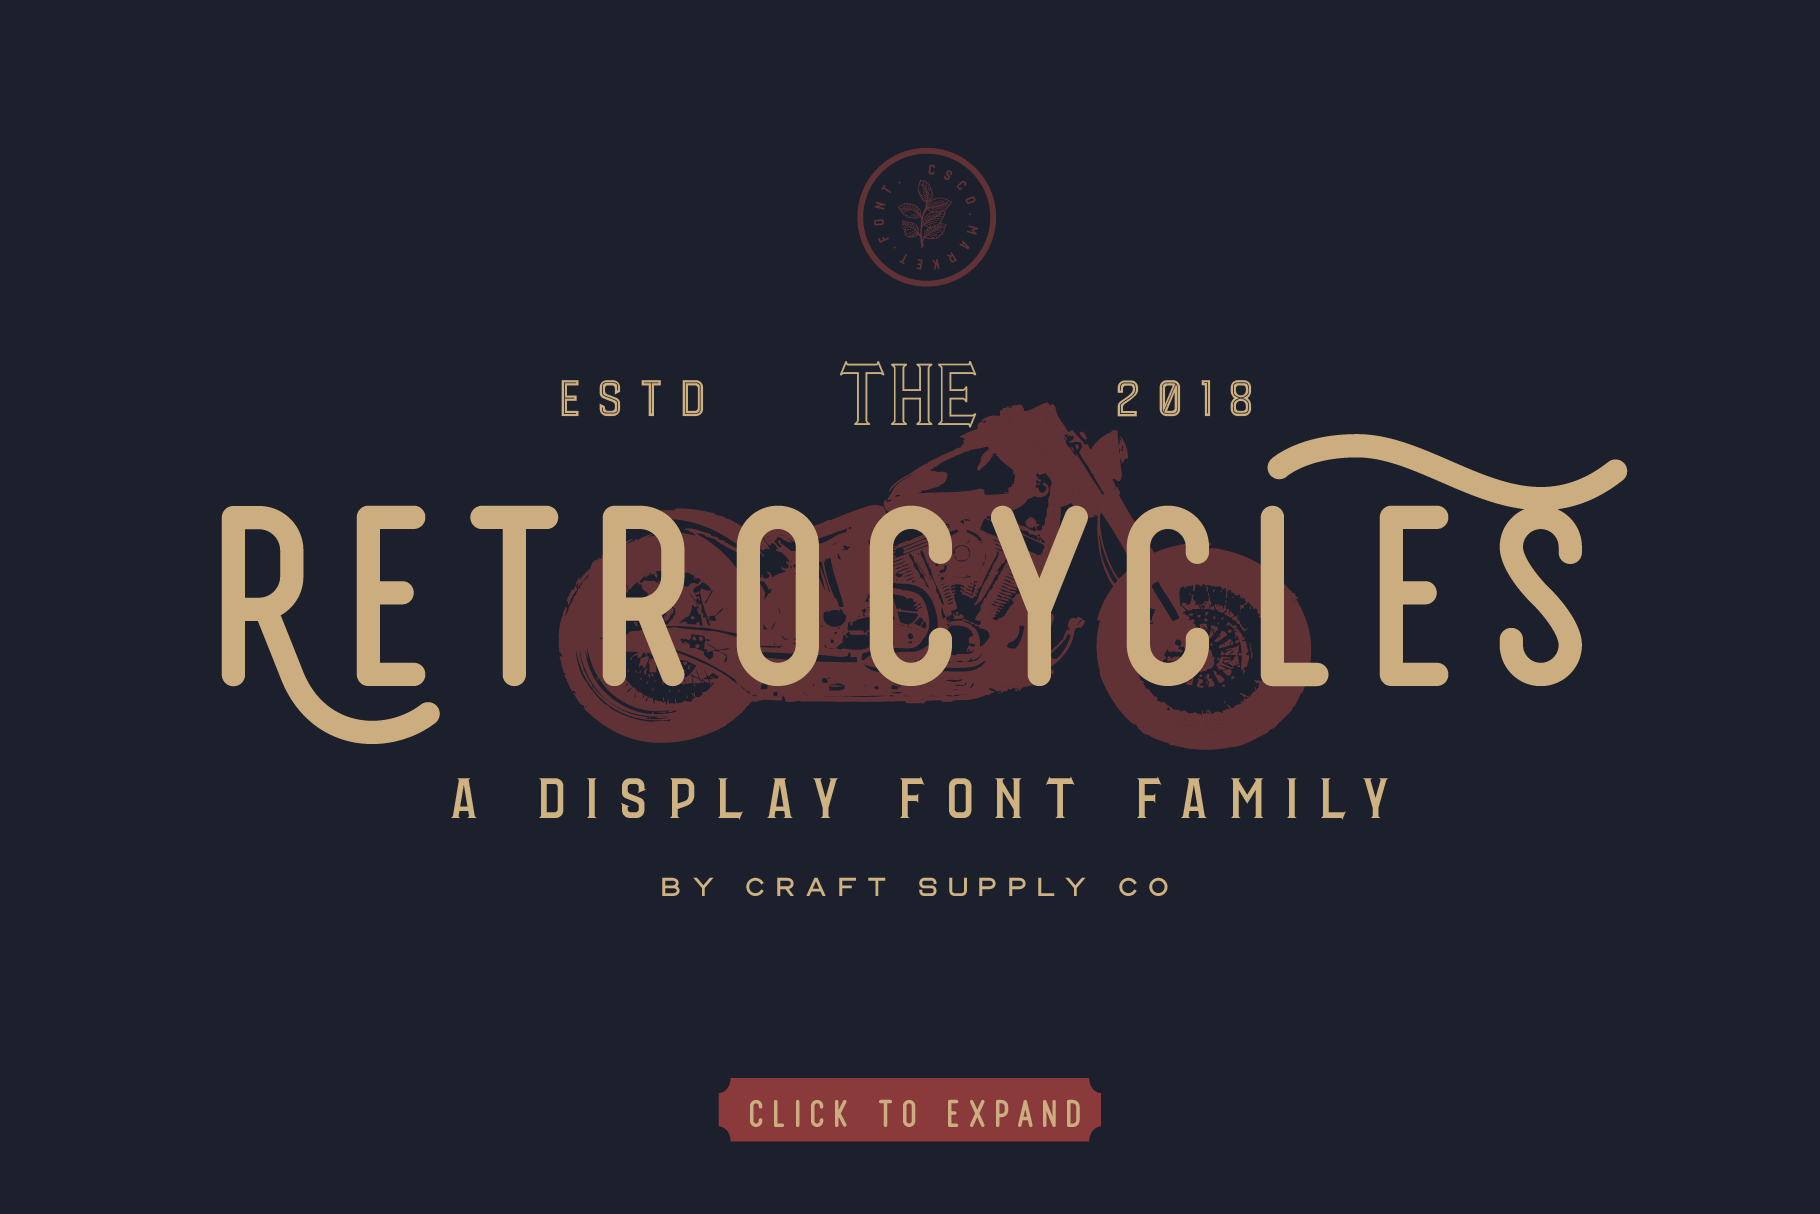 retrocycles font 80s